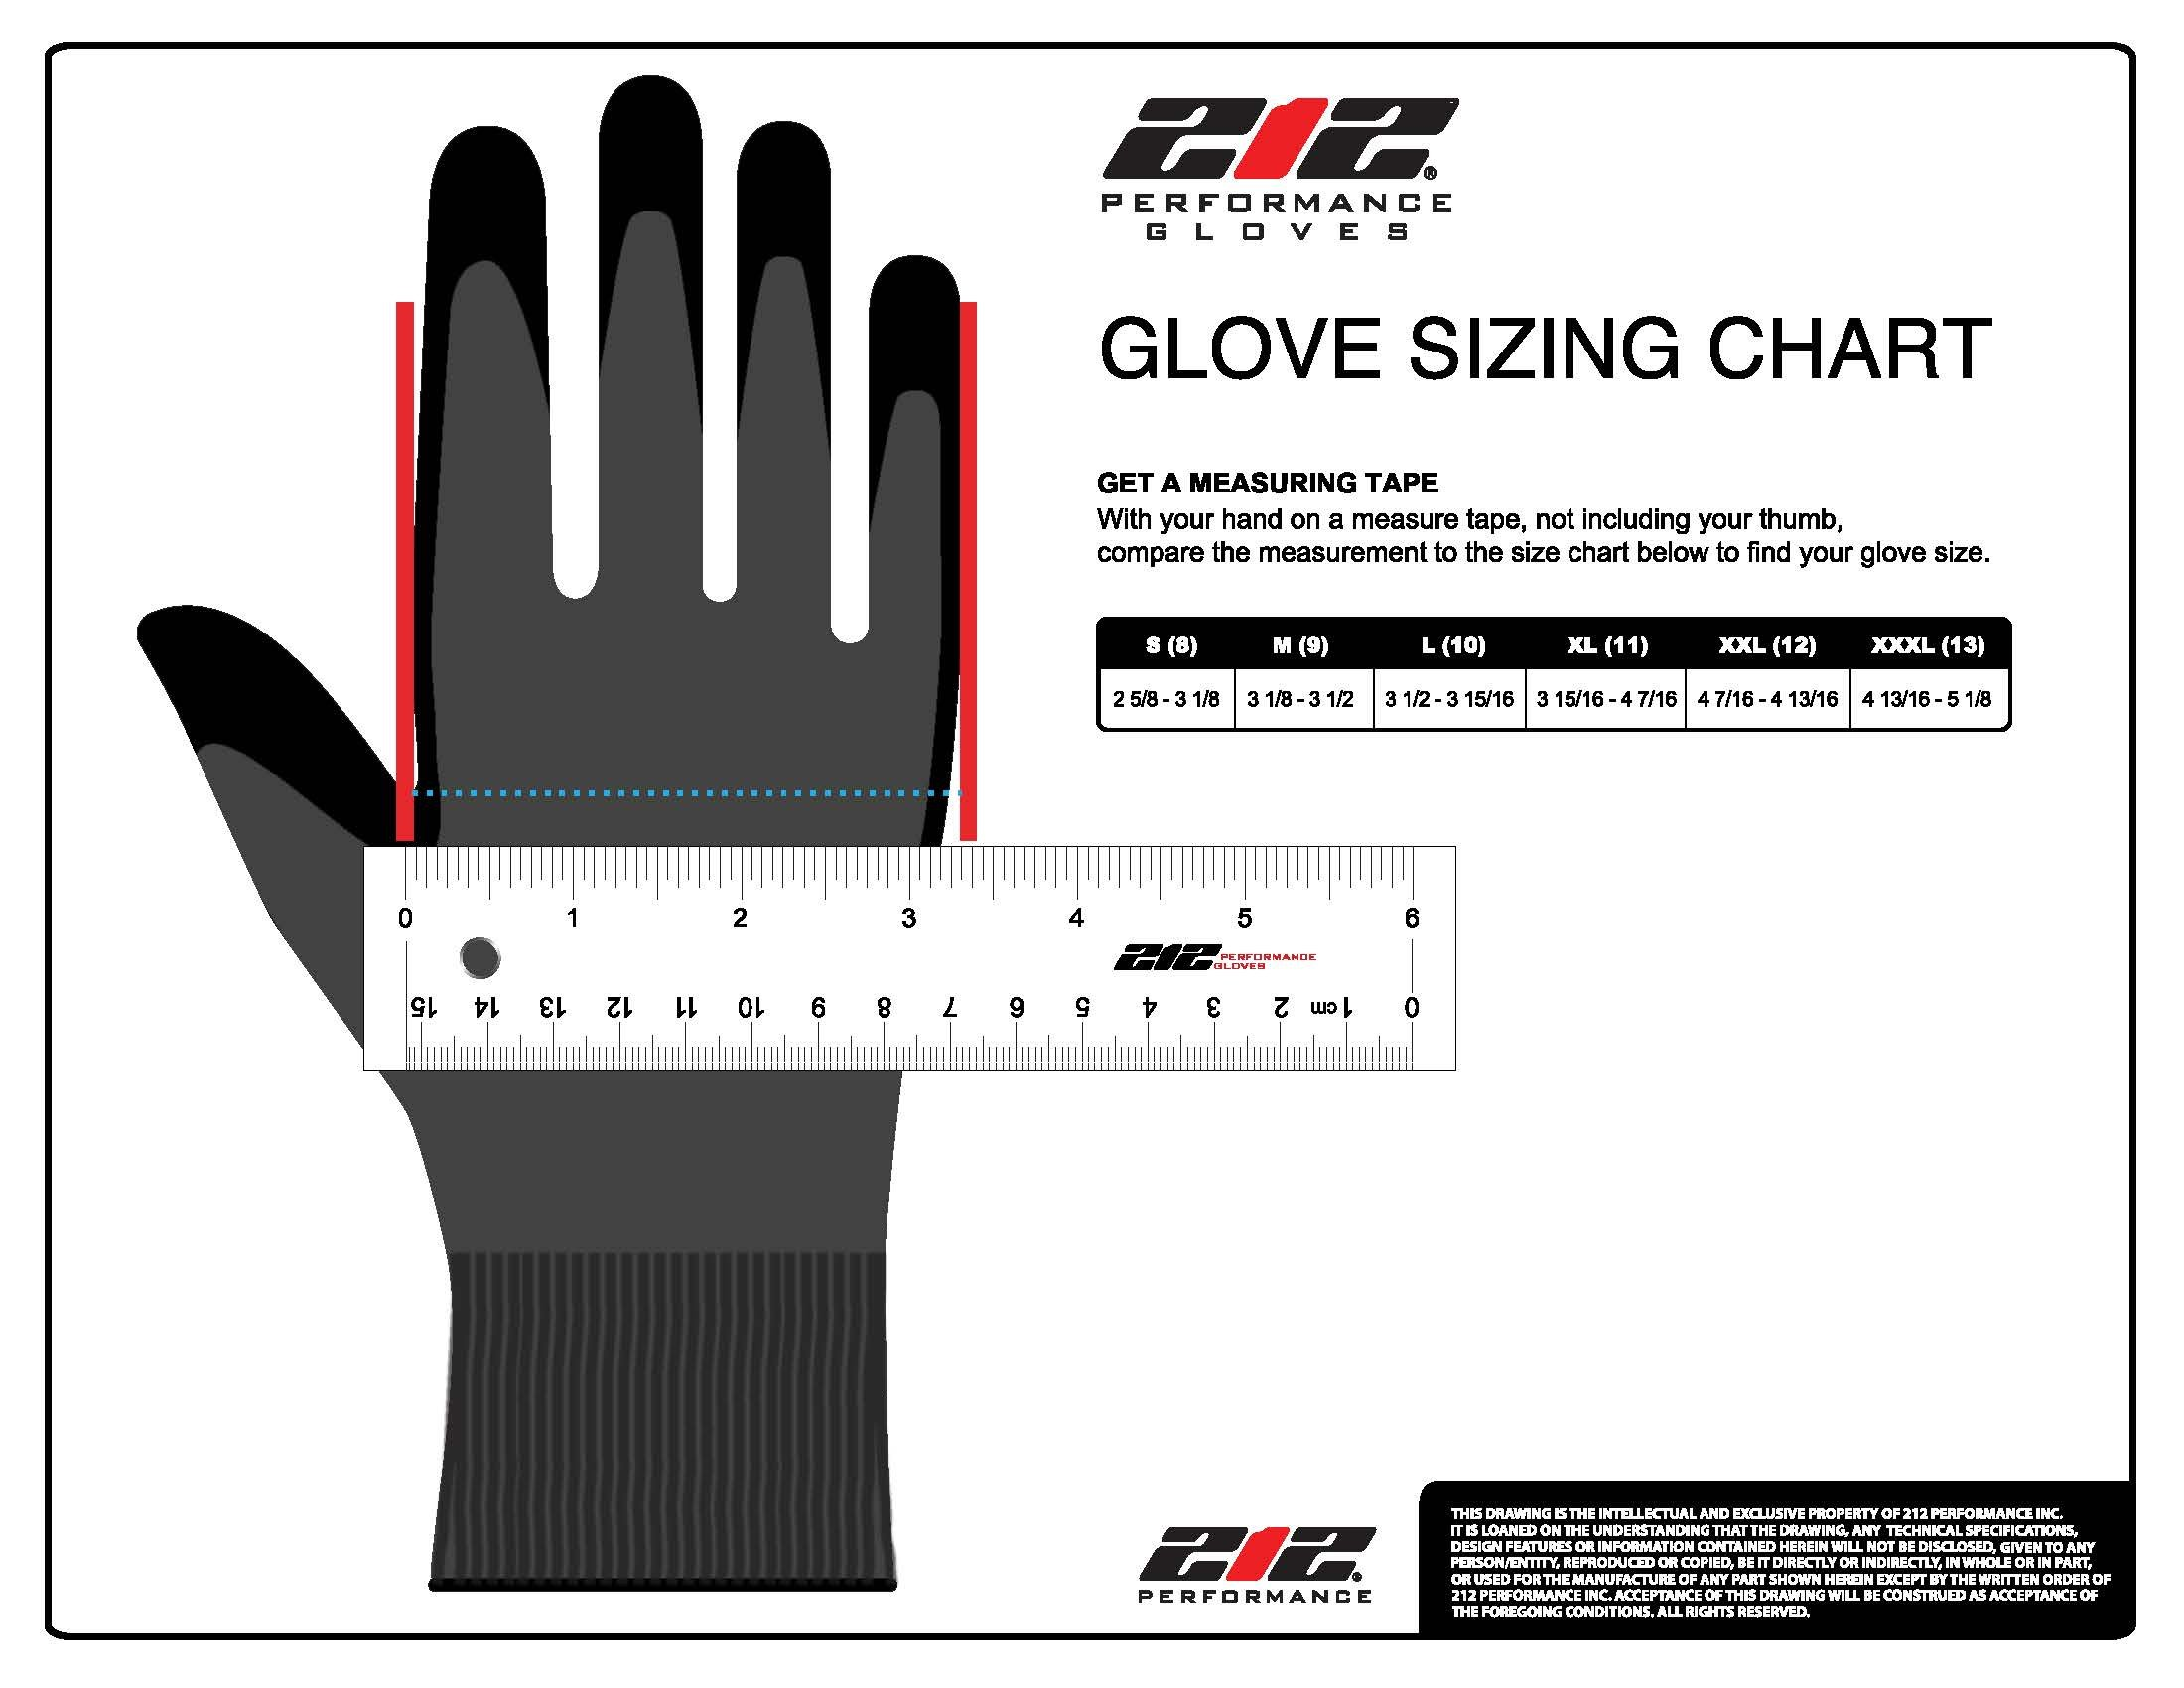 212 Performance Gloves AXDG-16-010 AX360 Dotted Grip Nitrile-dipped Work Glove, 12-Pair Bulk Pack, Large by 212 Performance Gloves (Image #5)